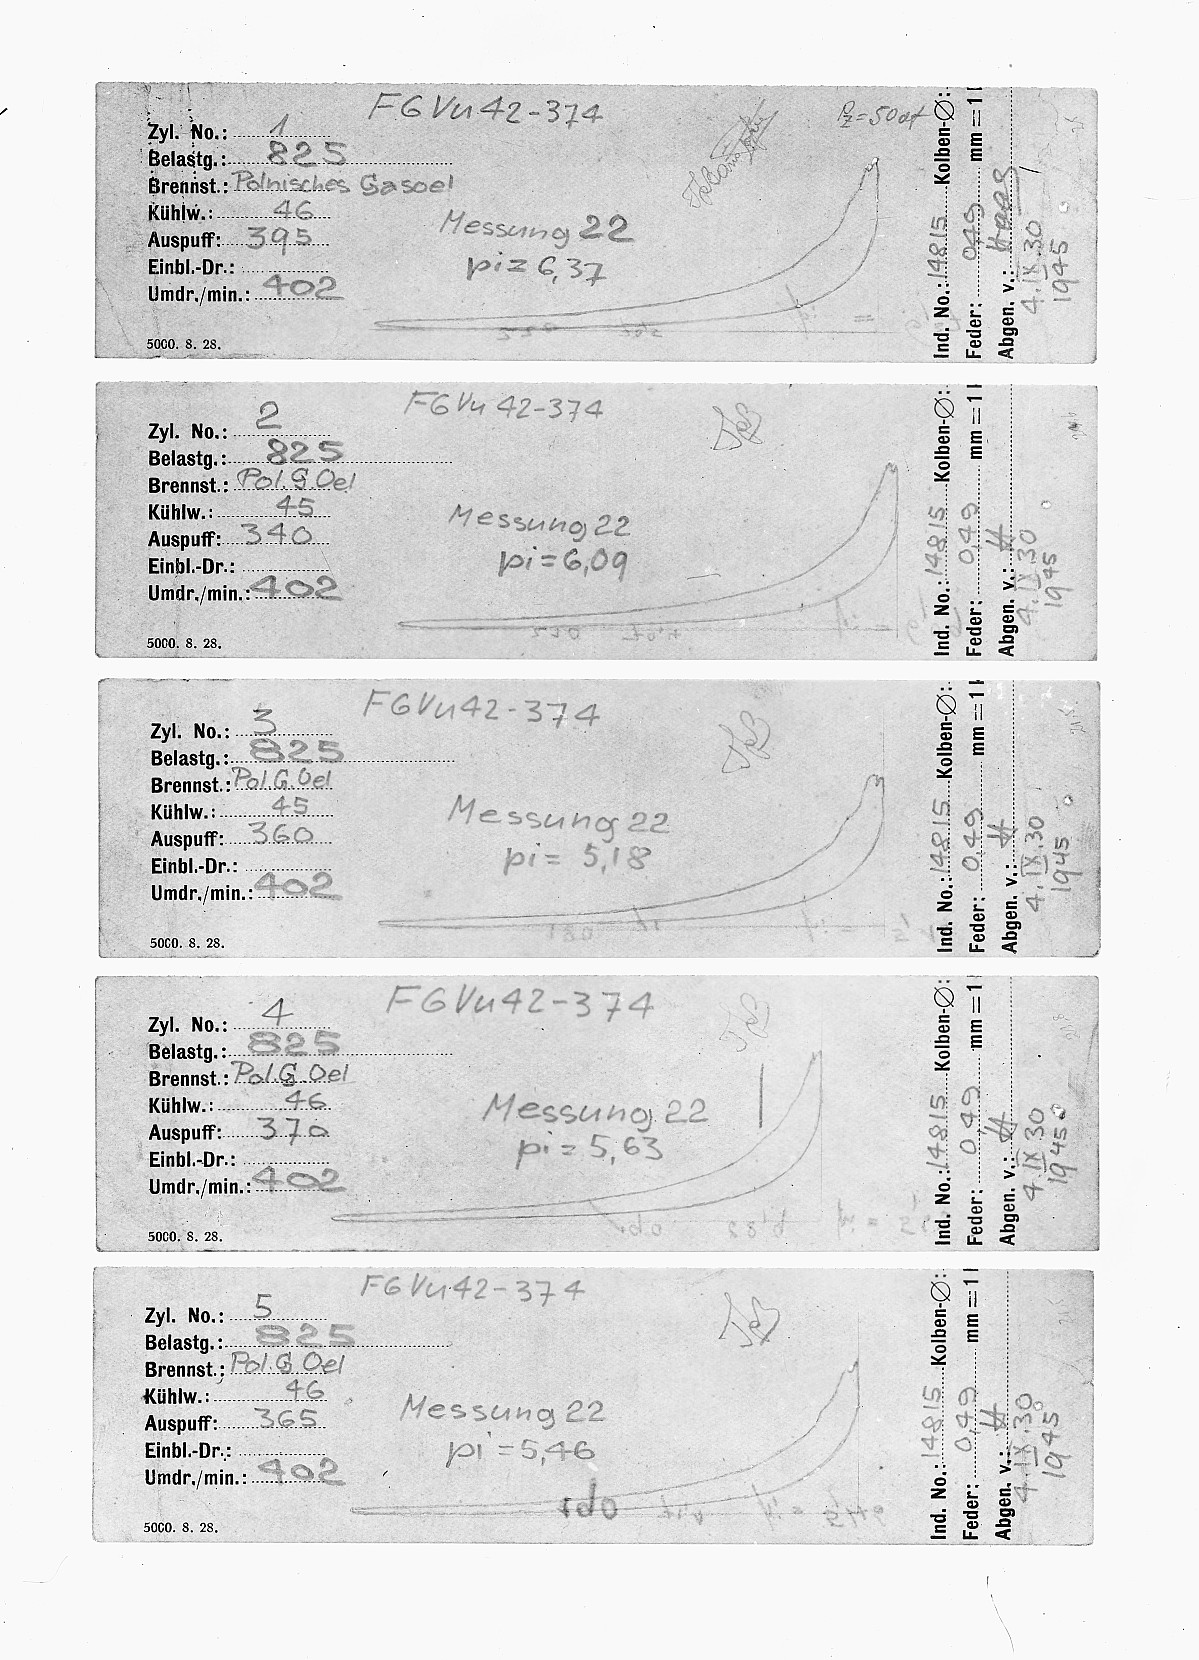 GFA 16/15181: Diagrams in the acceptance reports of GOMZY-LENINGRAD engine